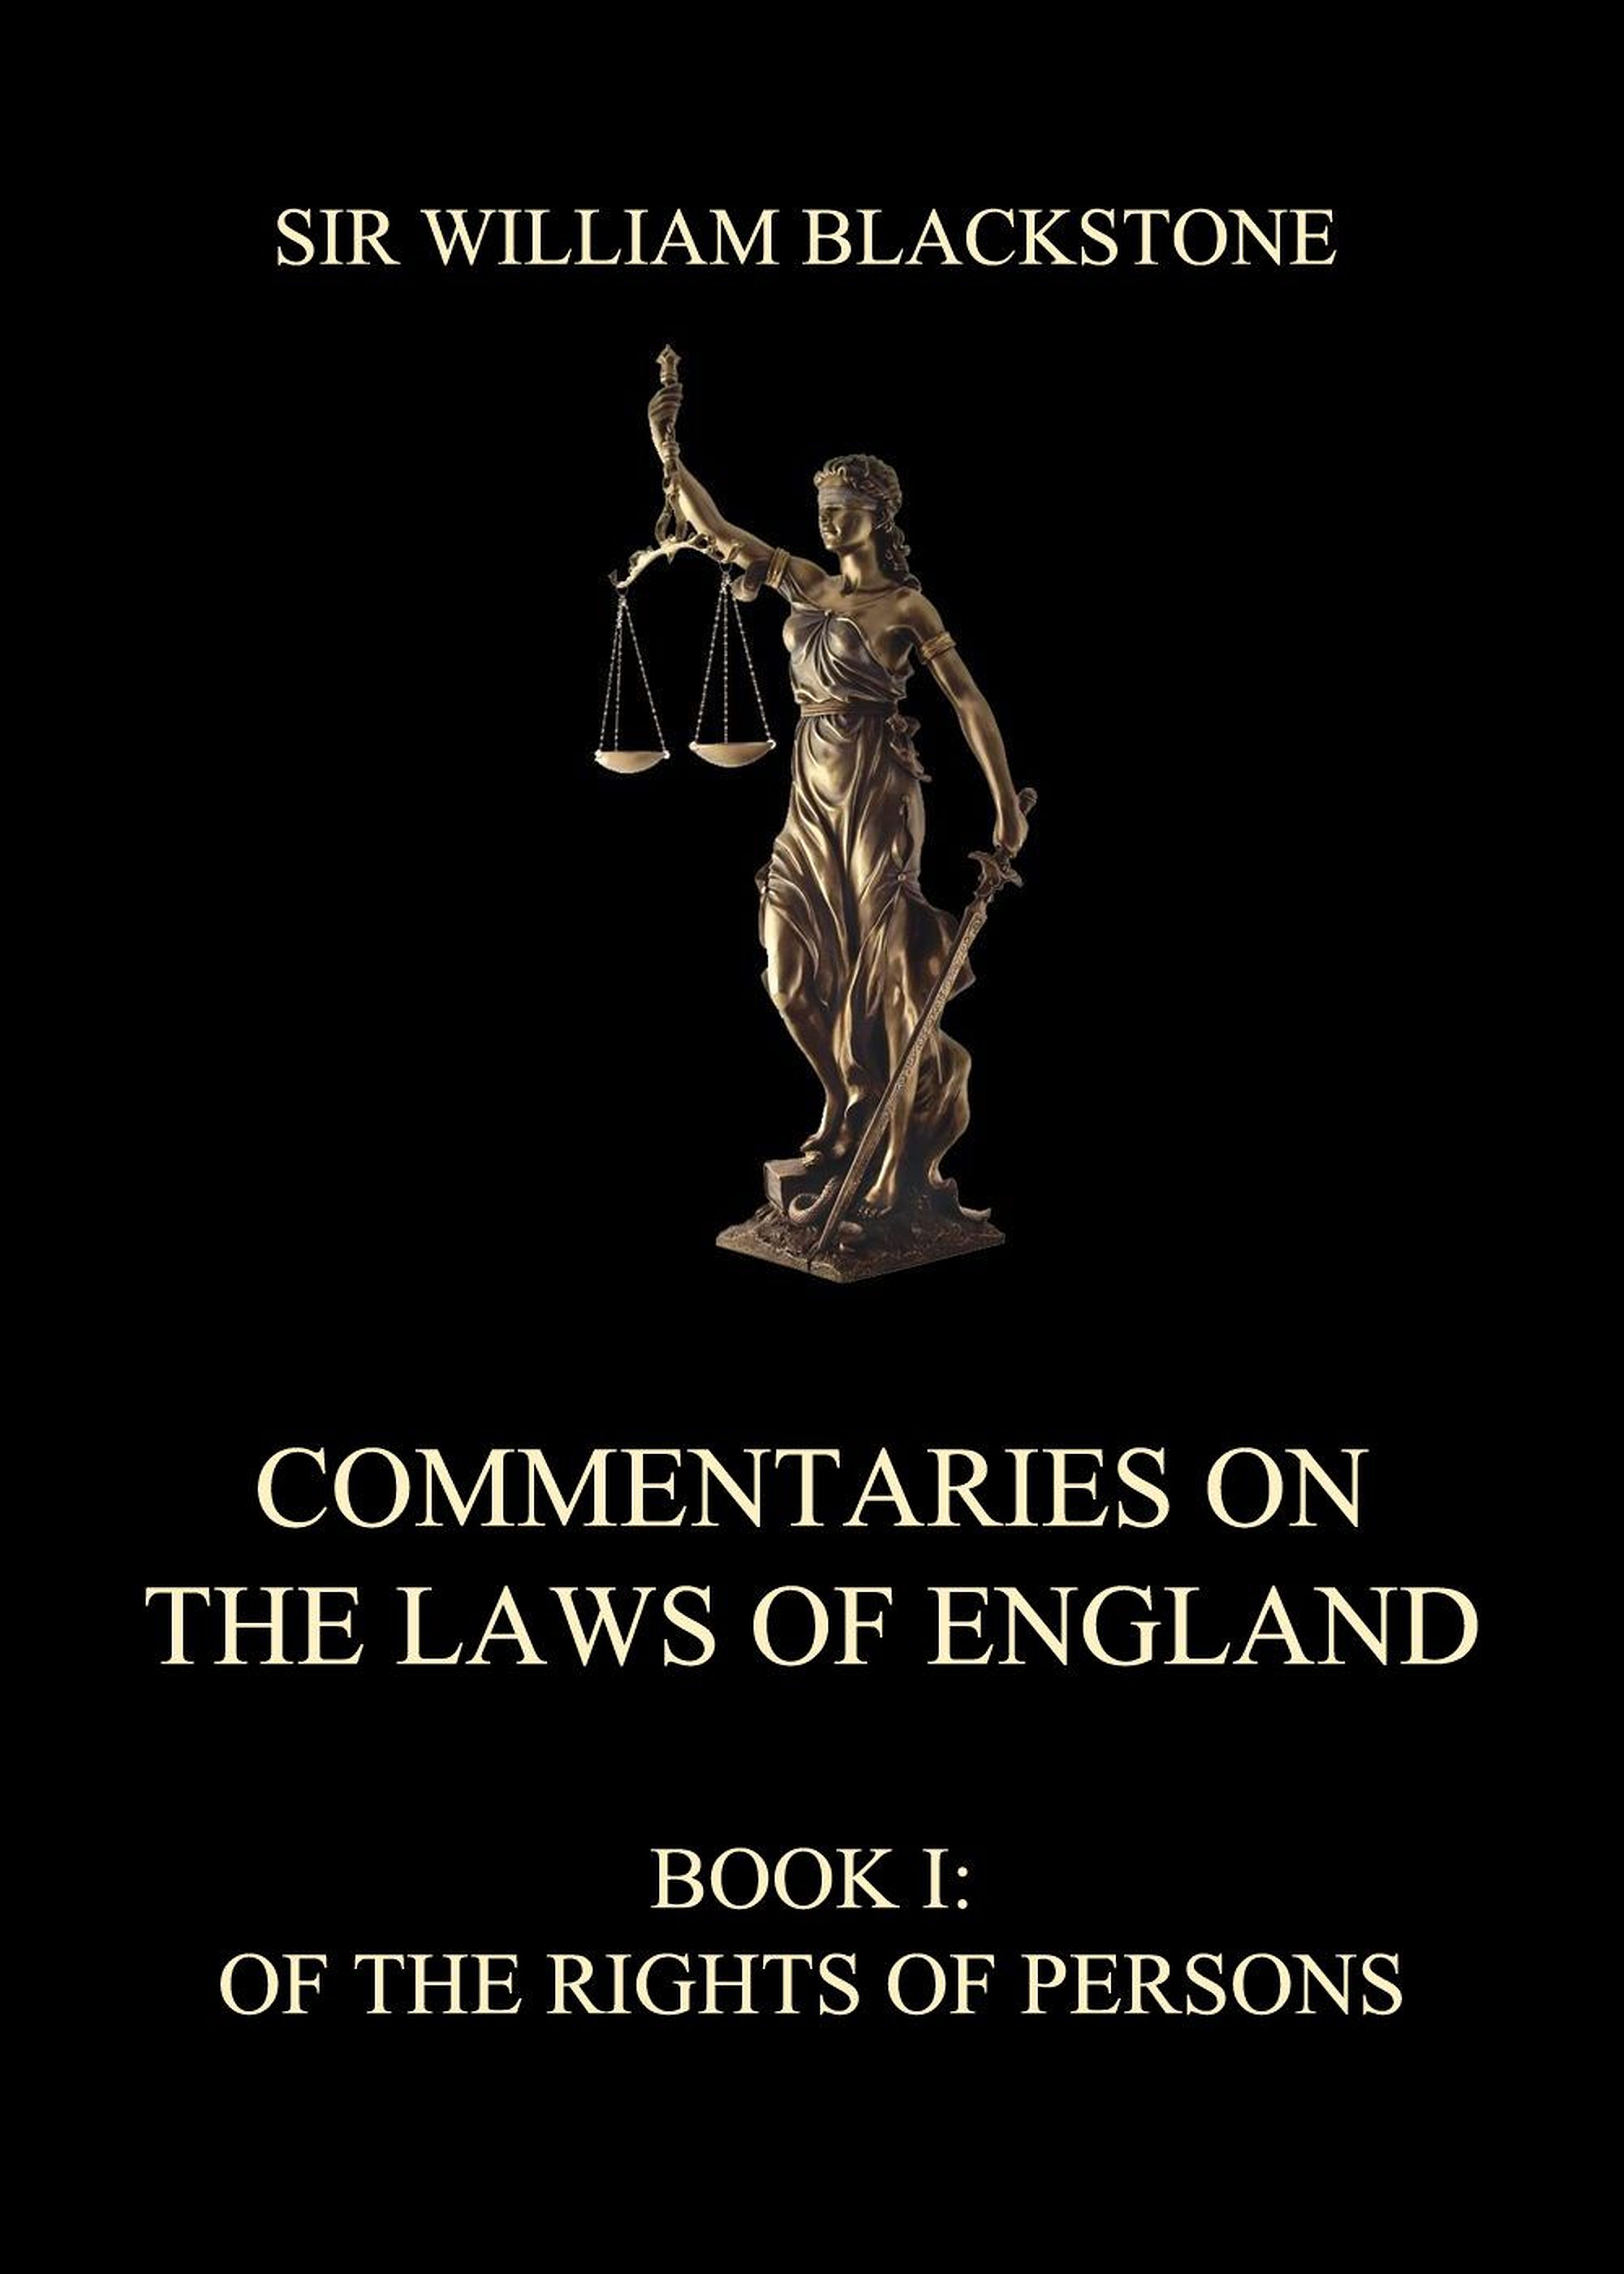 Sir William Blackstone Commentaries on the Laws of England blackstone